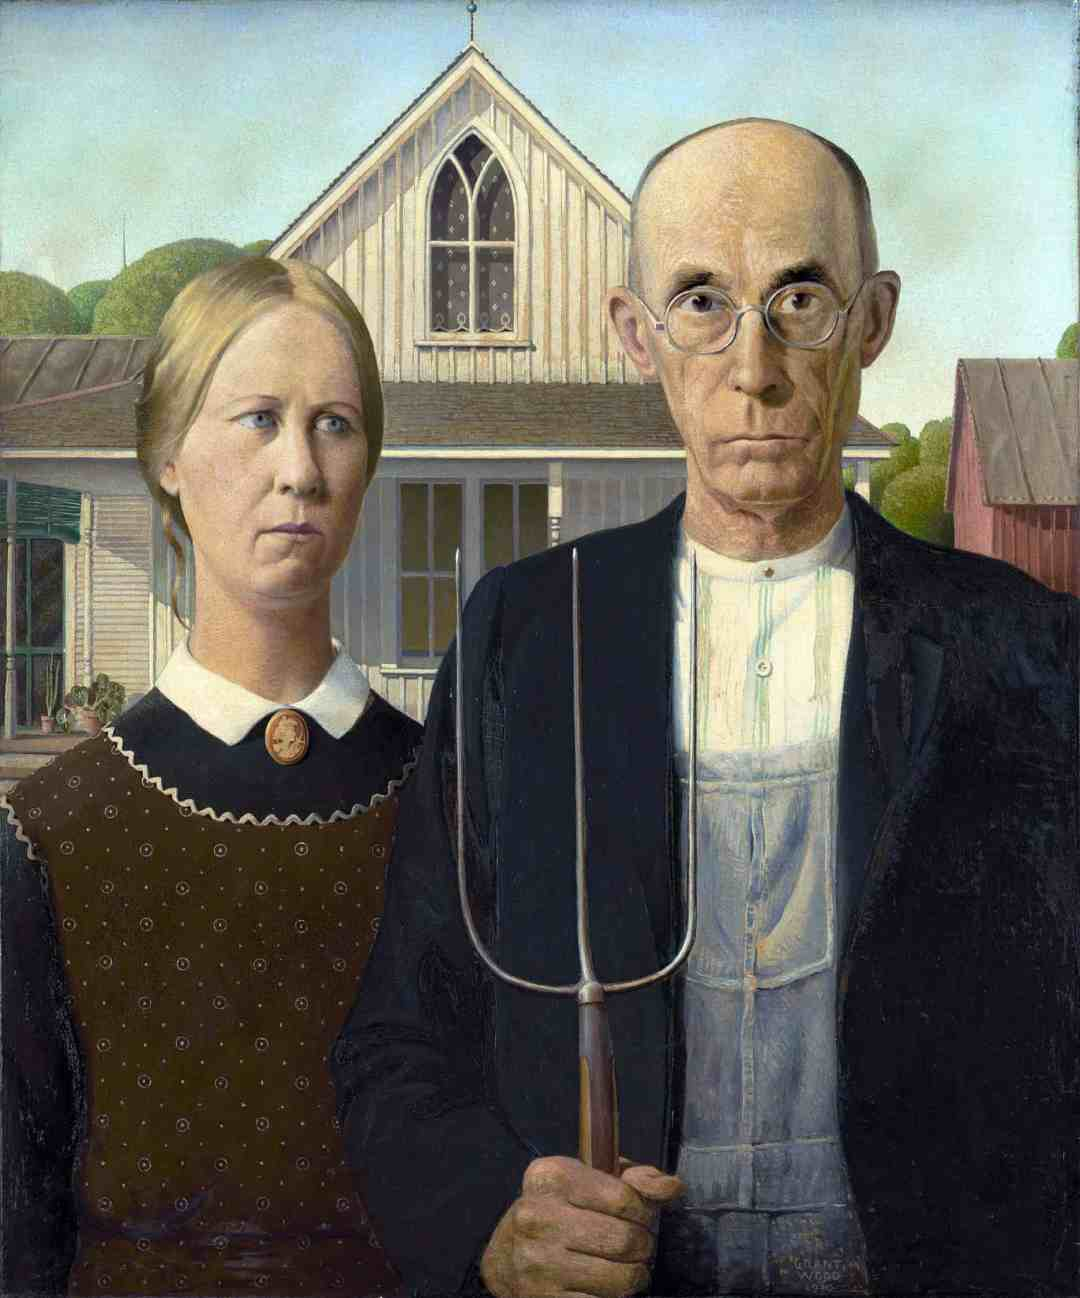 Grant Wood, American Gothic, 1930The Art Institute of Chicago